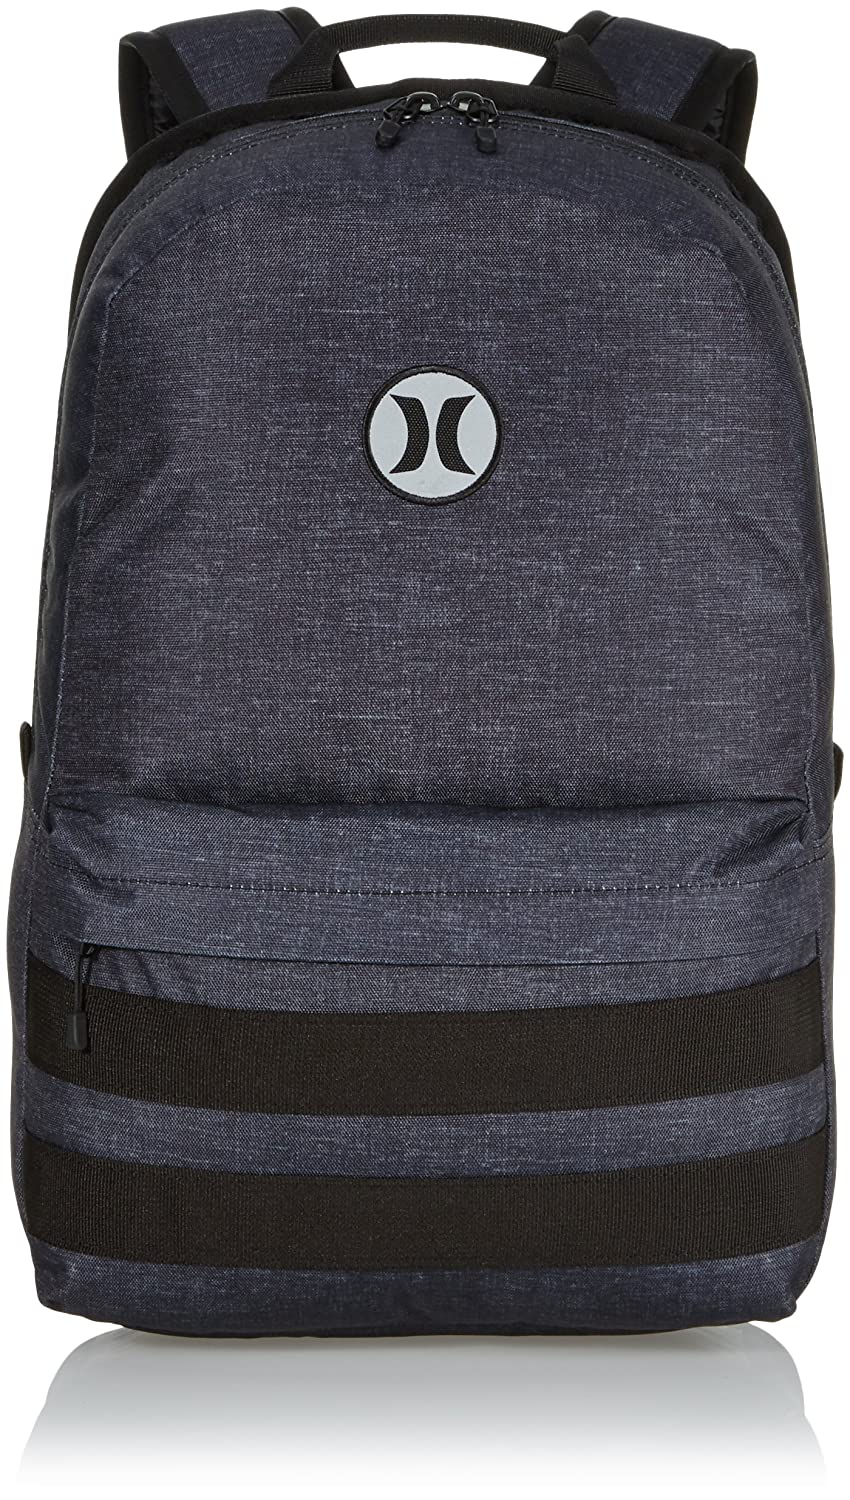 Hurley Block Party Pack - Mochila, color negro, talla DE: 47 cm: Amazon.es: Equipaje